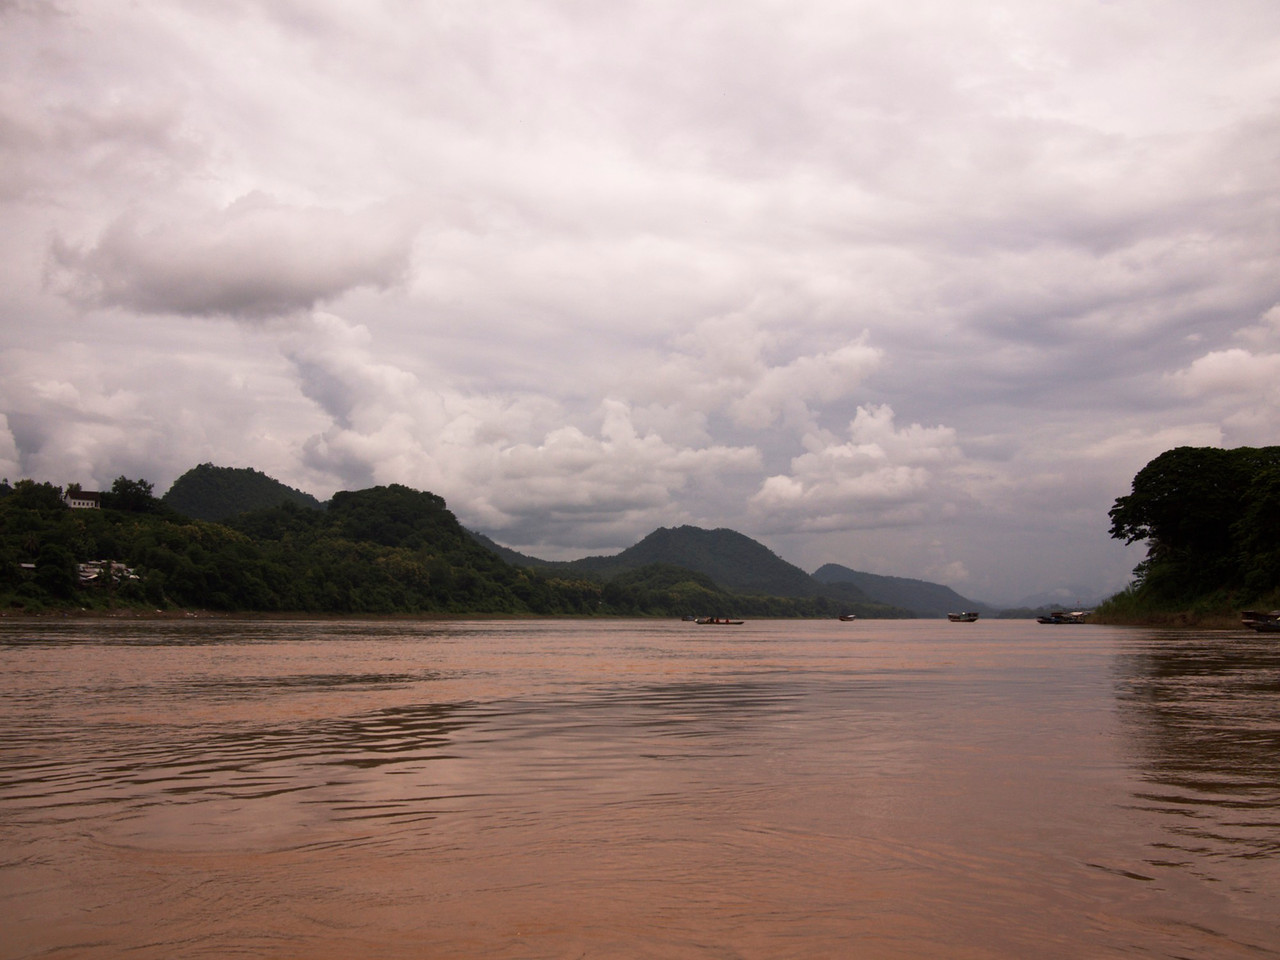 we took a boat ride on the mekong river. beautiful!